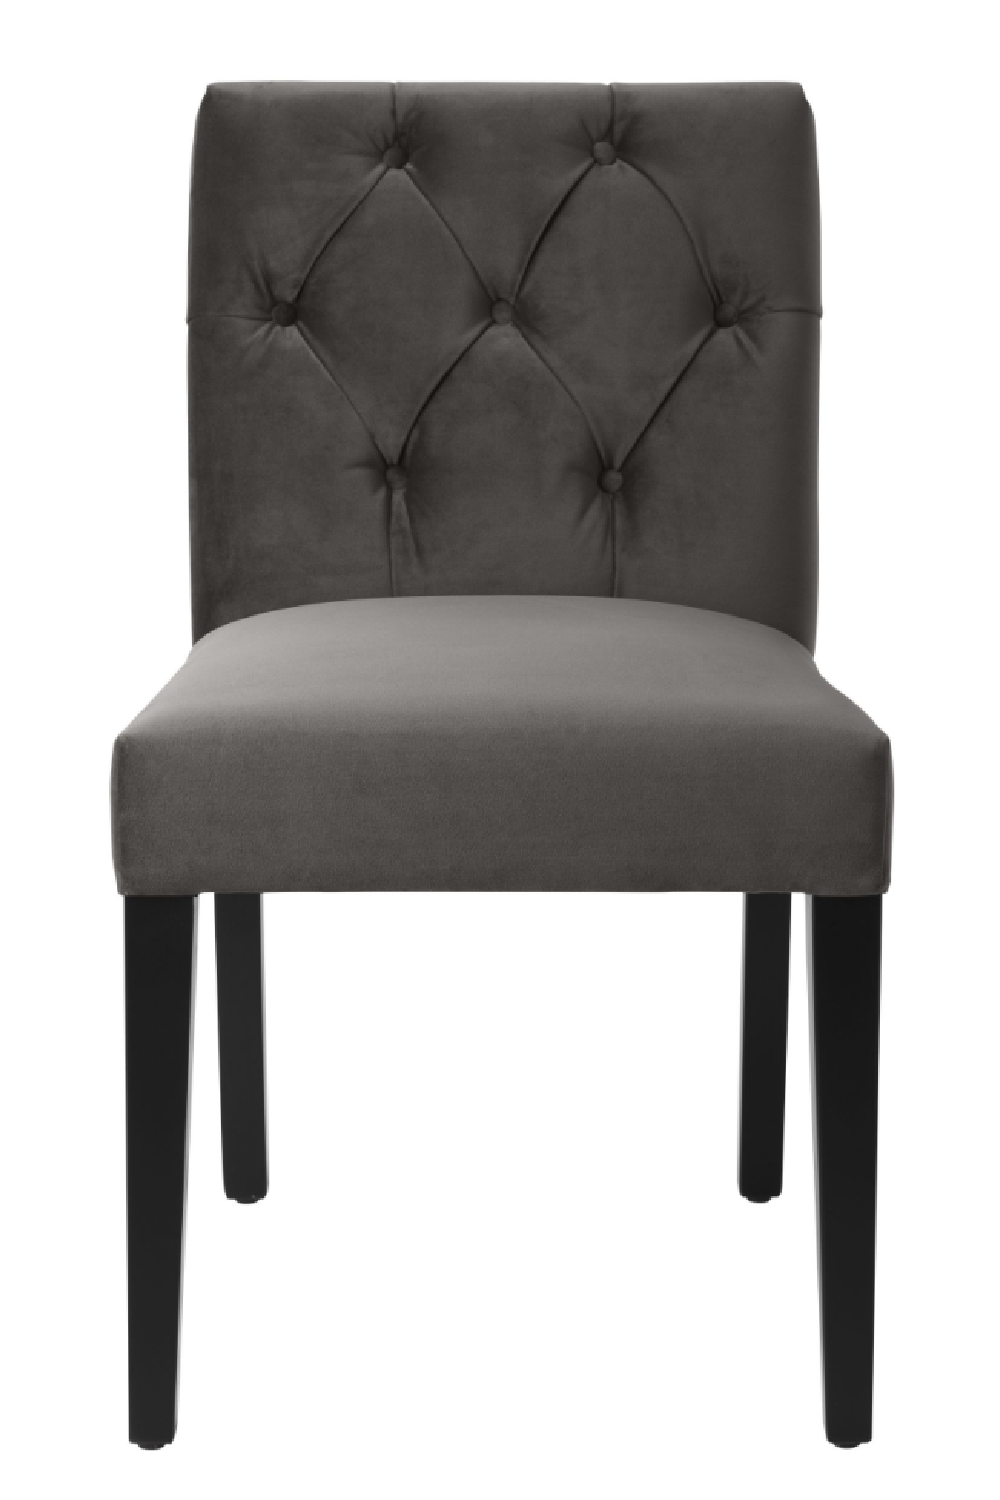 Gray Velvet Dining Chair | Eichholtz Atena